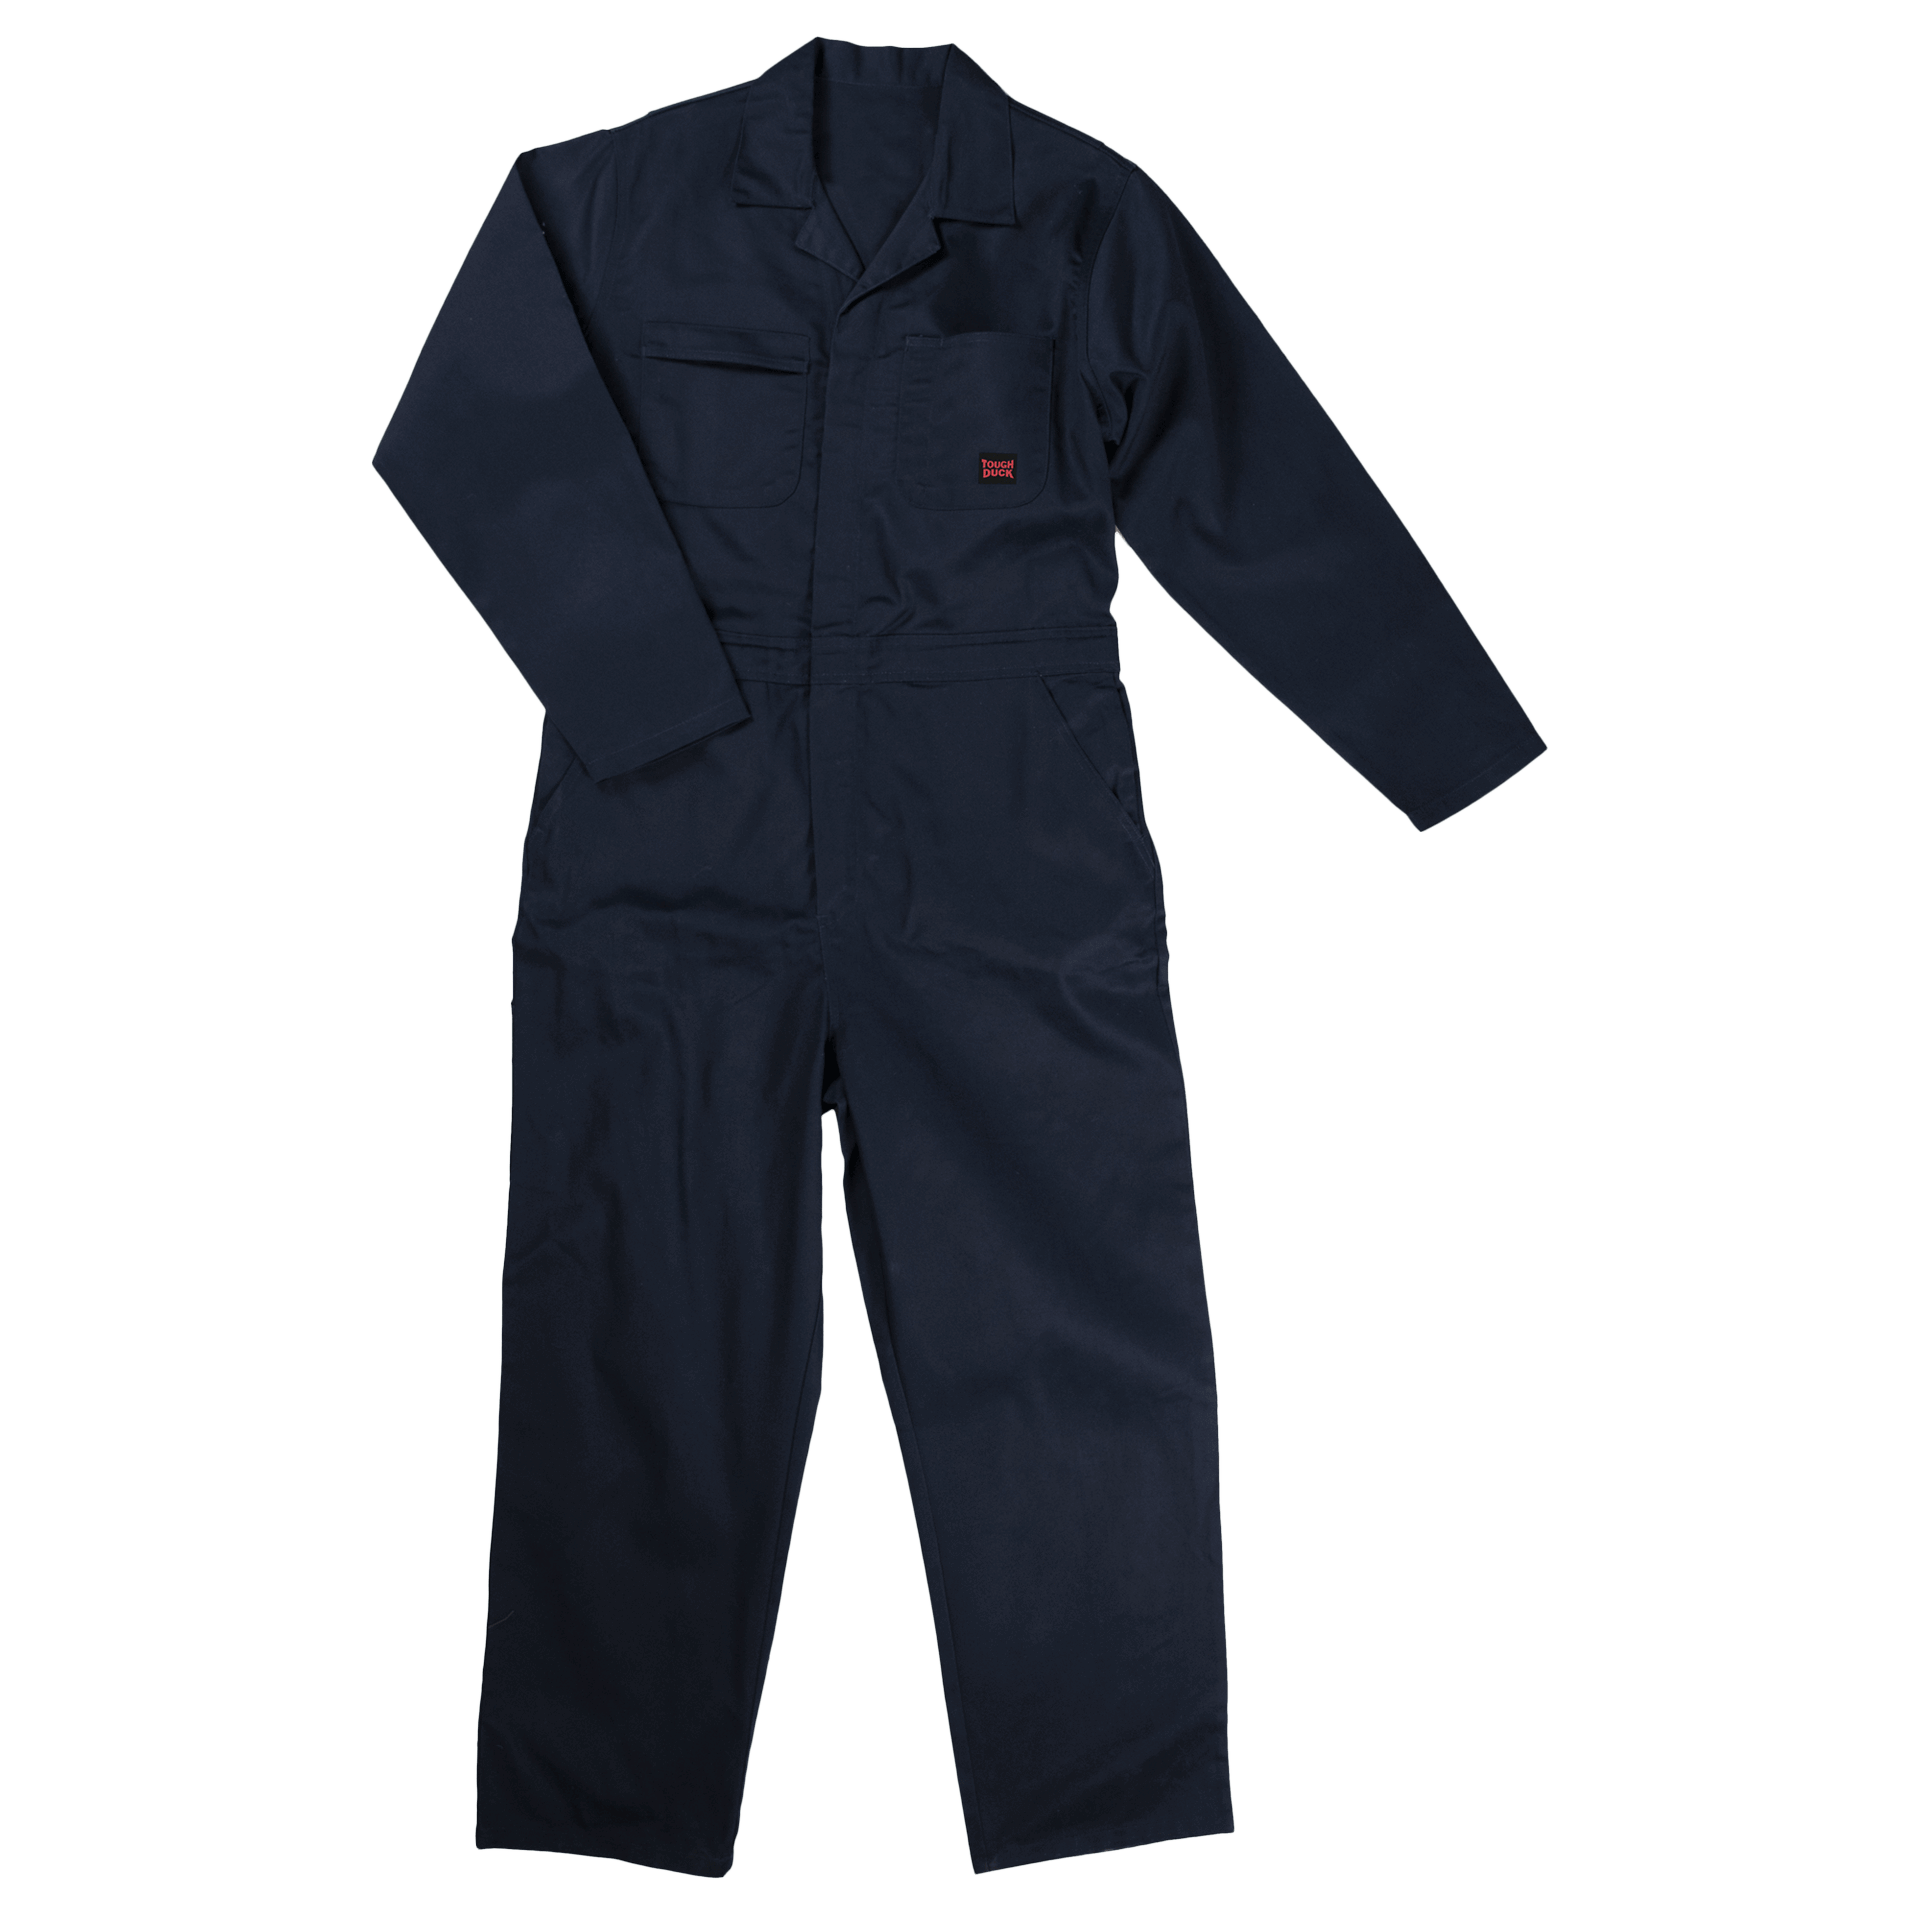 Work King Unlined Long Sleeve Coverall - i063